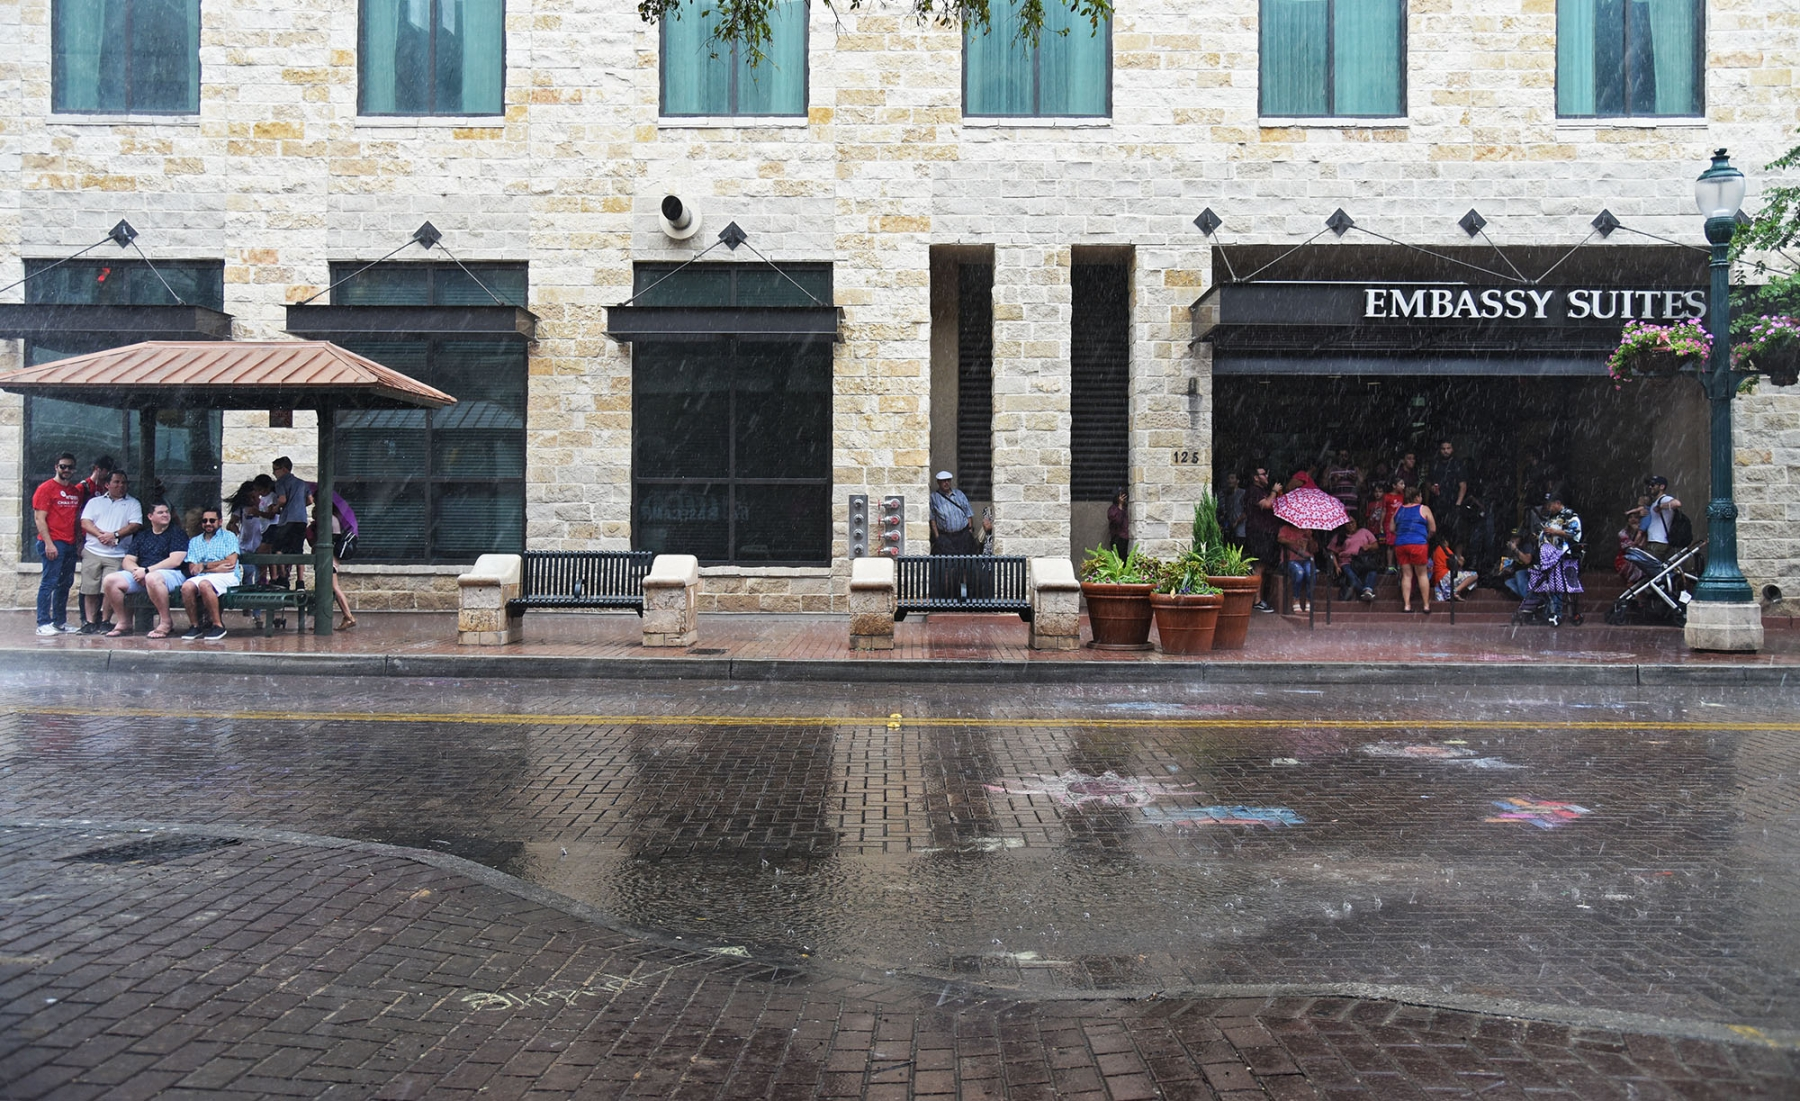 Attendees at the 15th annual Chalk It Up sit at a bus stop and under an Embassy Suites awning during a brief rain shower Oct. 13 in downtown San Antonio.  <em><b>Photo by V. Finster | Heron</b></em>